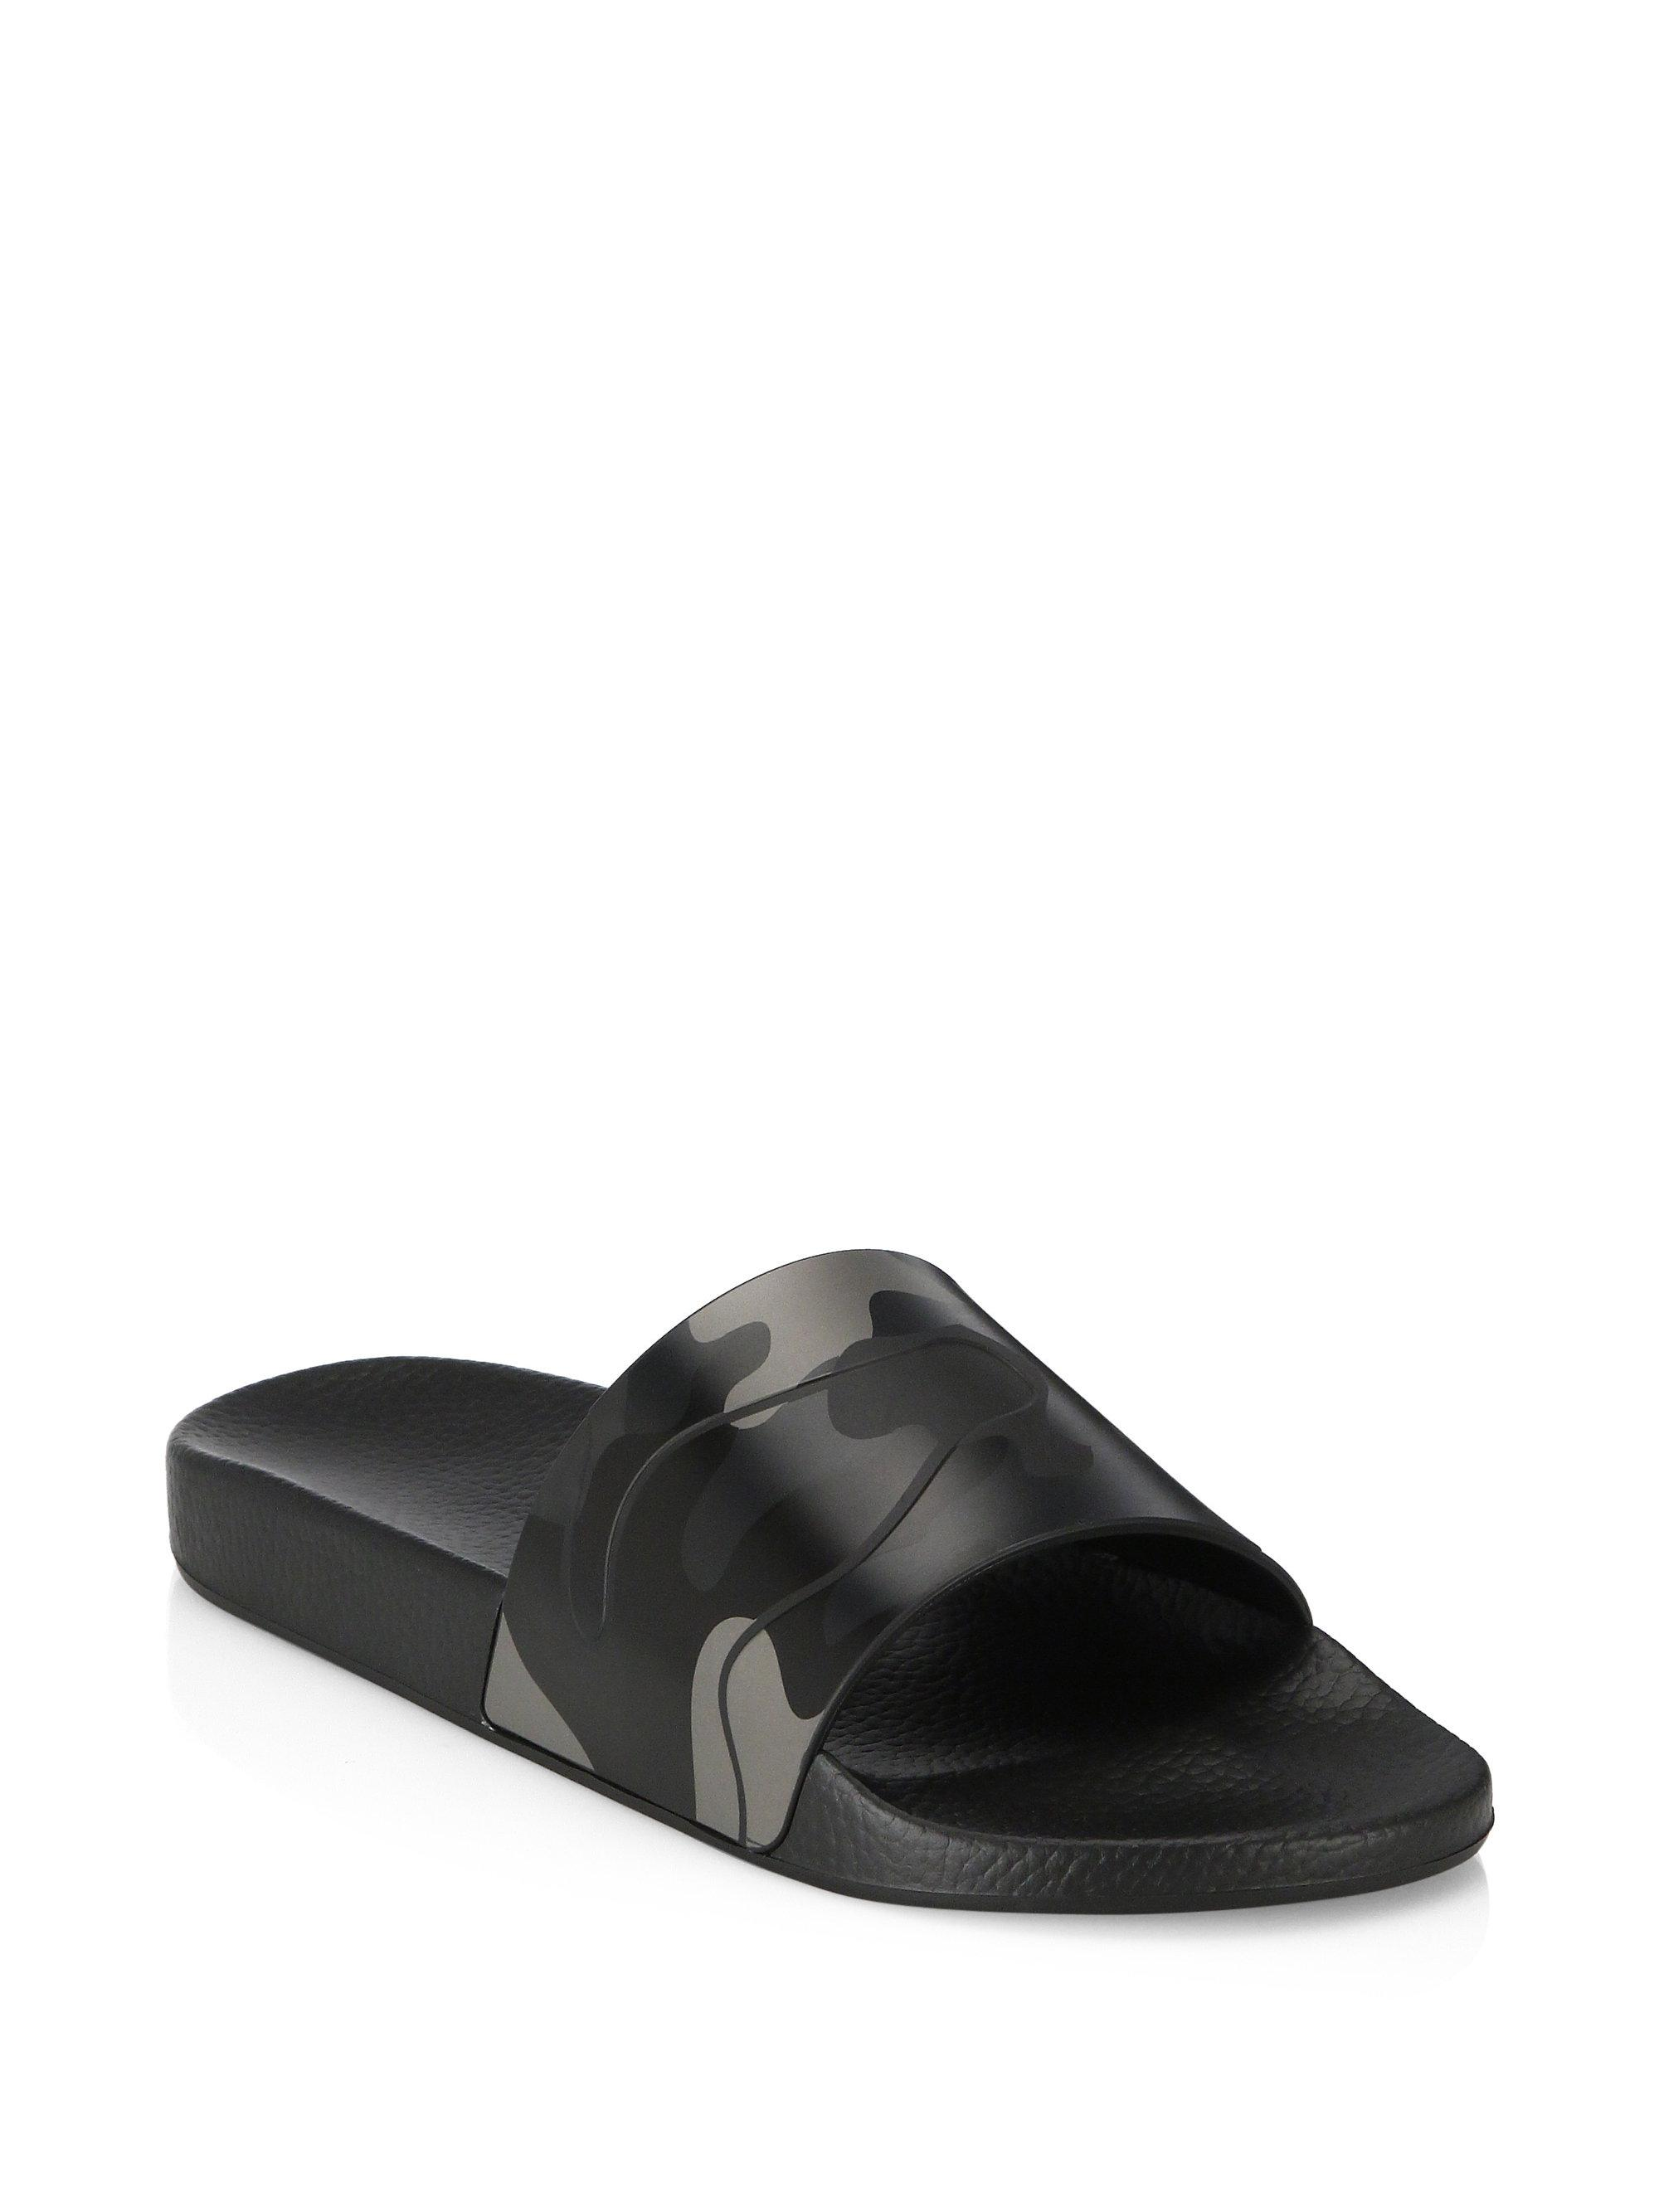 39234be0d871 Lyst - Valentino Camo Rubber Slides in Black for Men